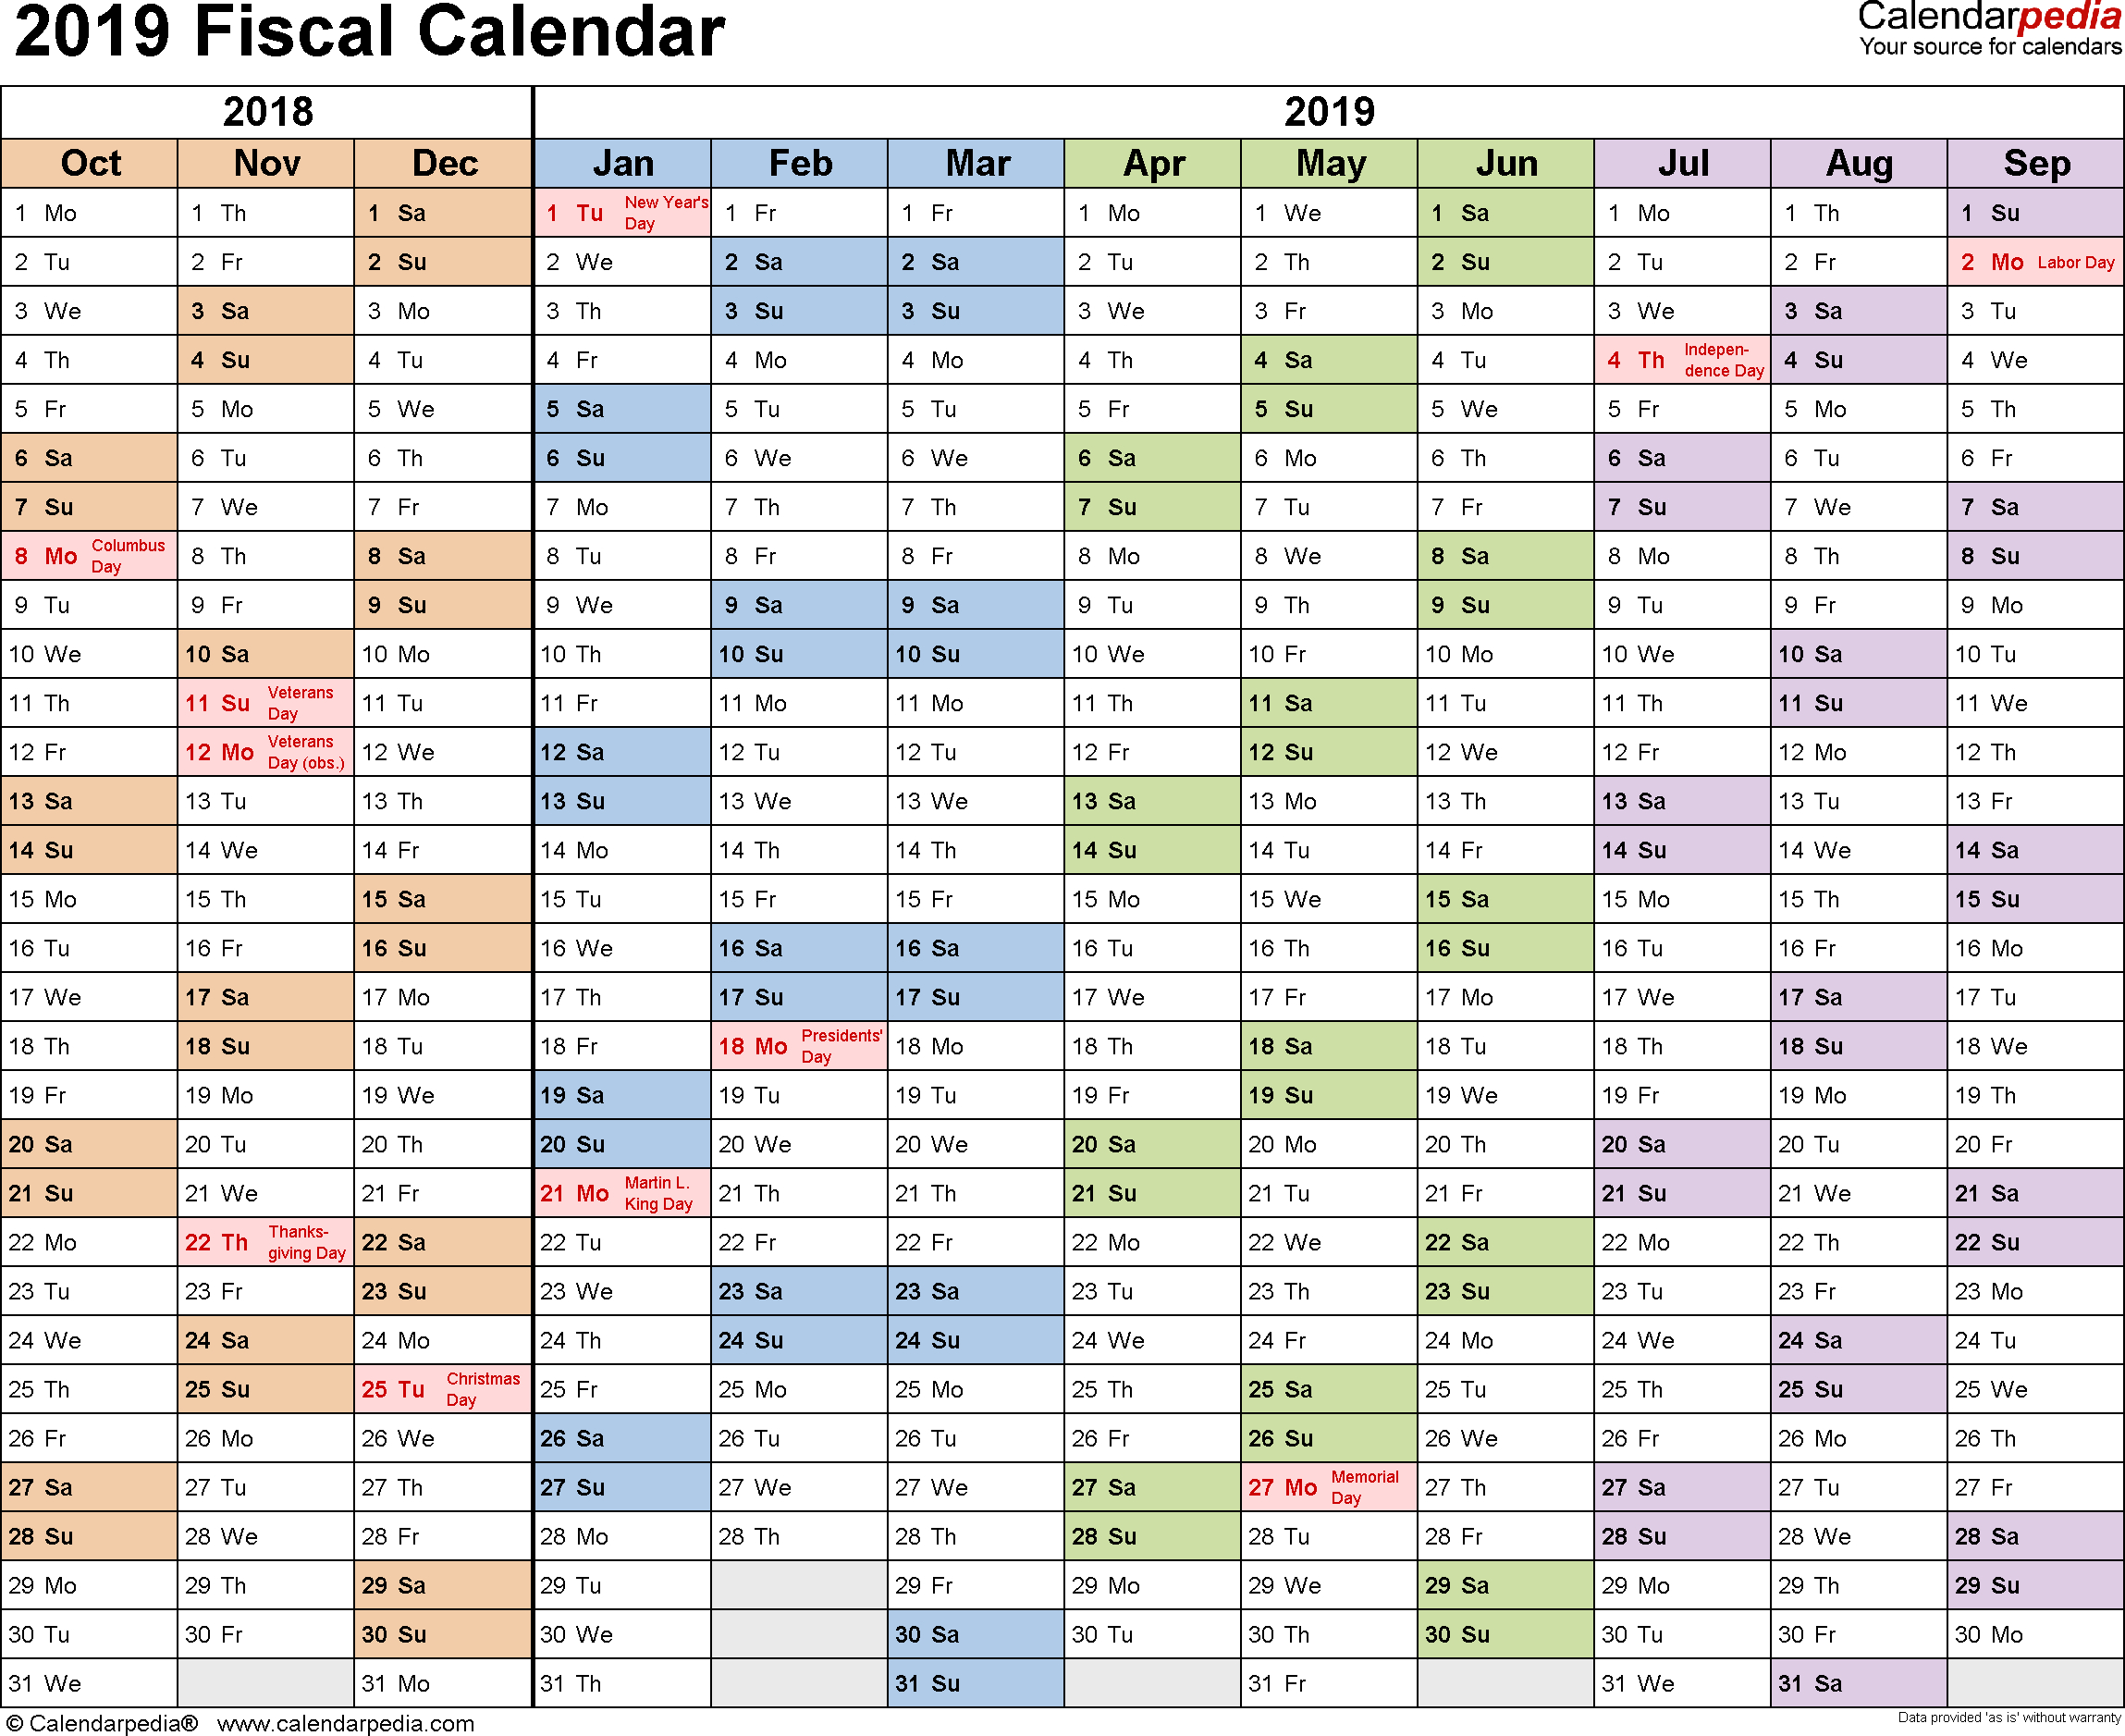 Fiscal Calendars 2019 As Free Printable Pdf Templates with regard to Financial Calendar 2019/2020 With Week Numbers